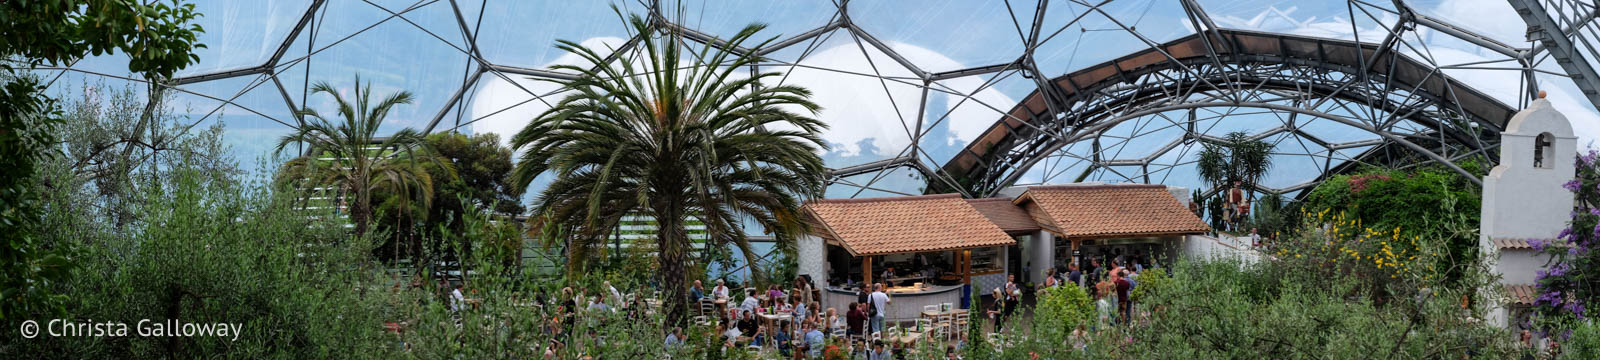 Inside the Mediterranean biome. Photo by Christa Galloway.